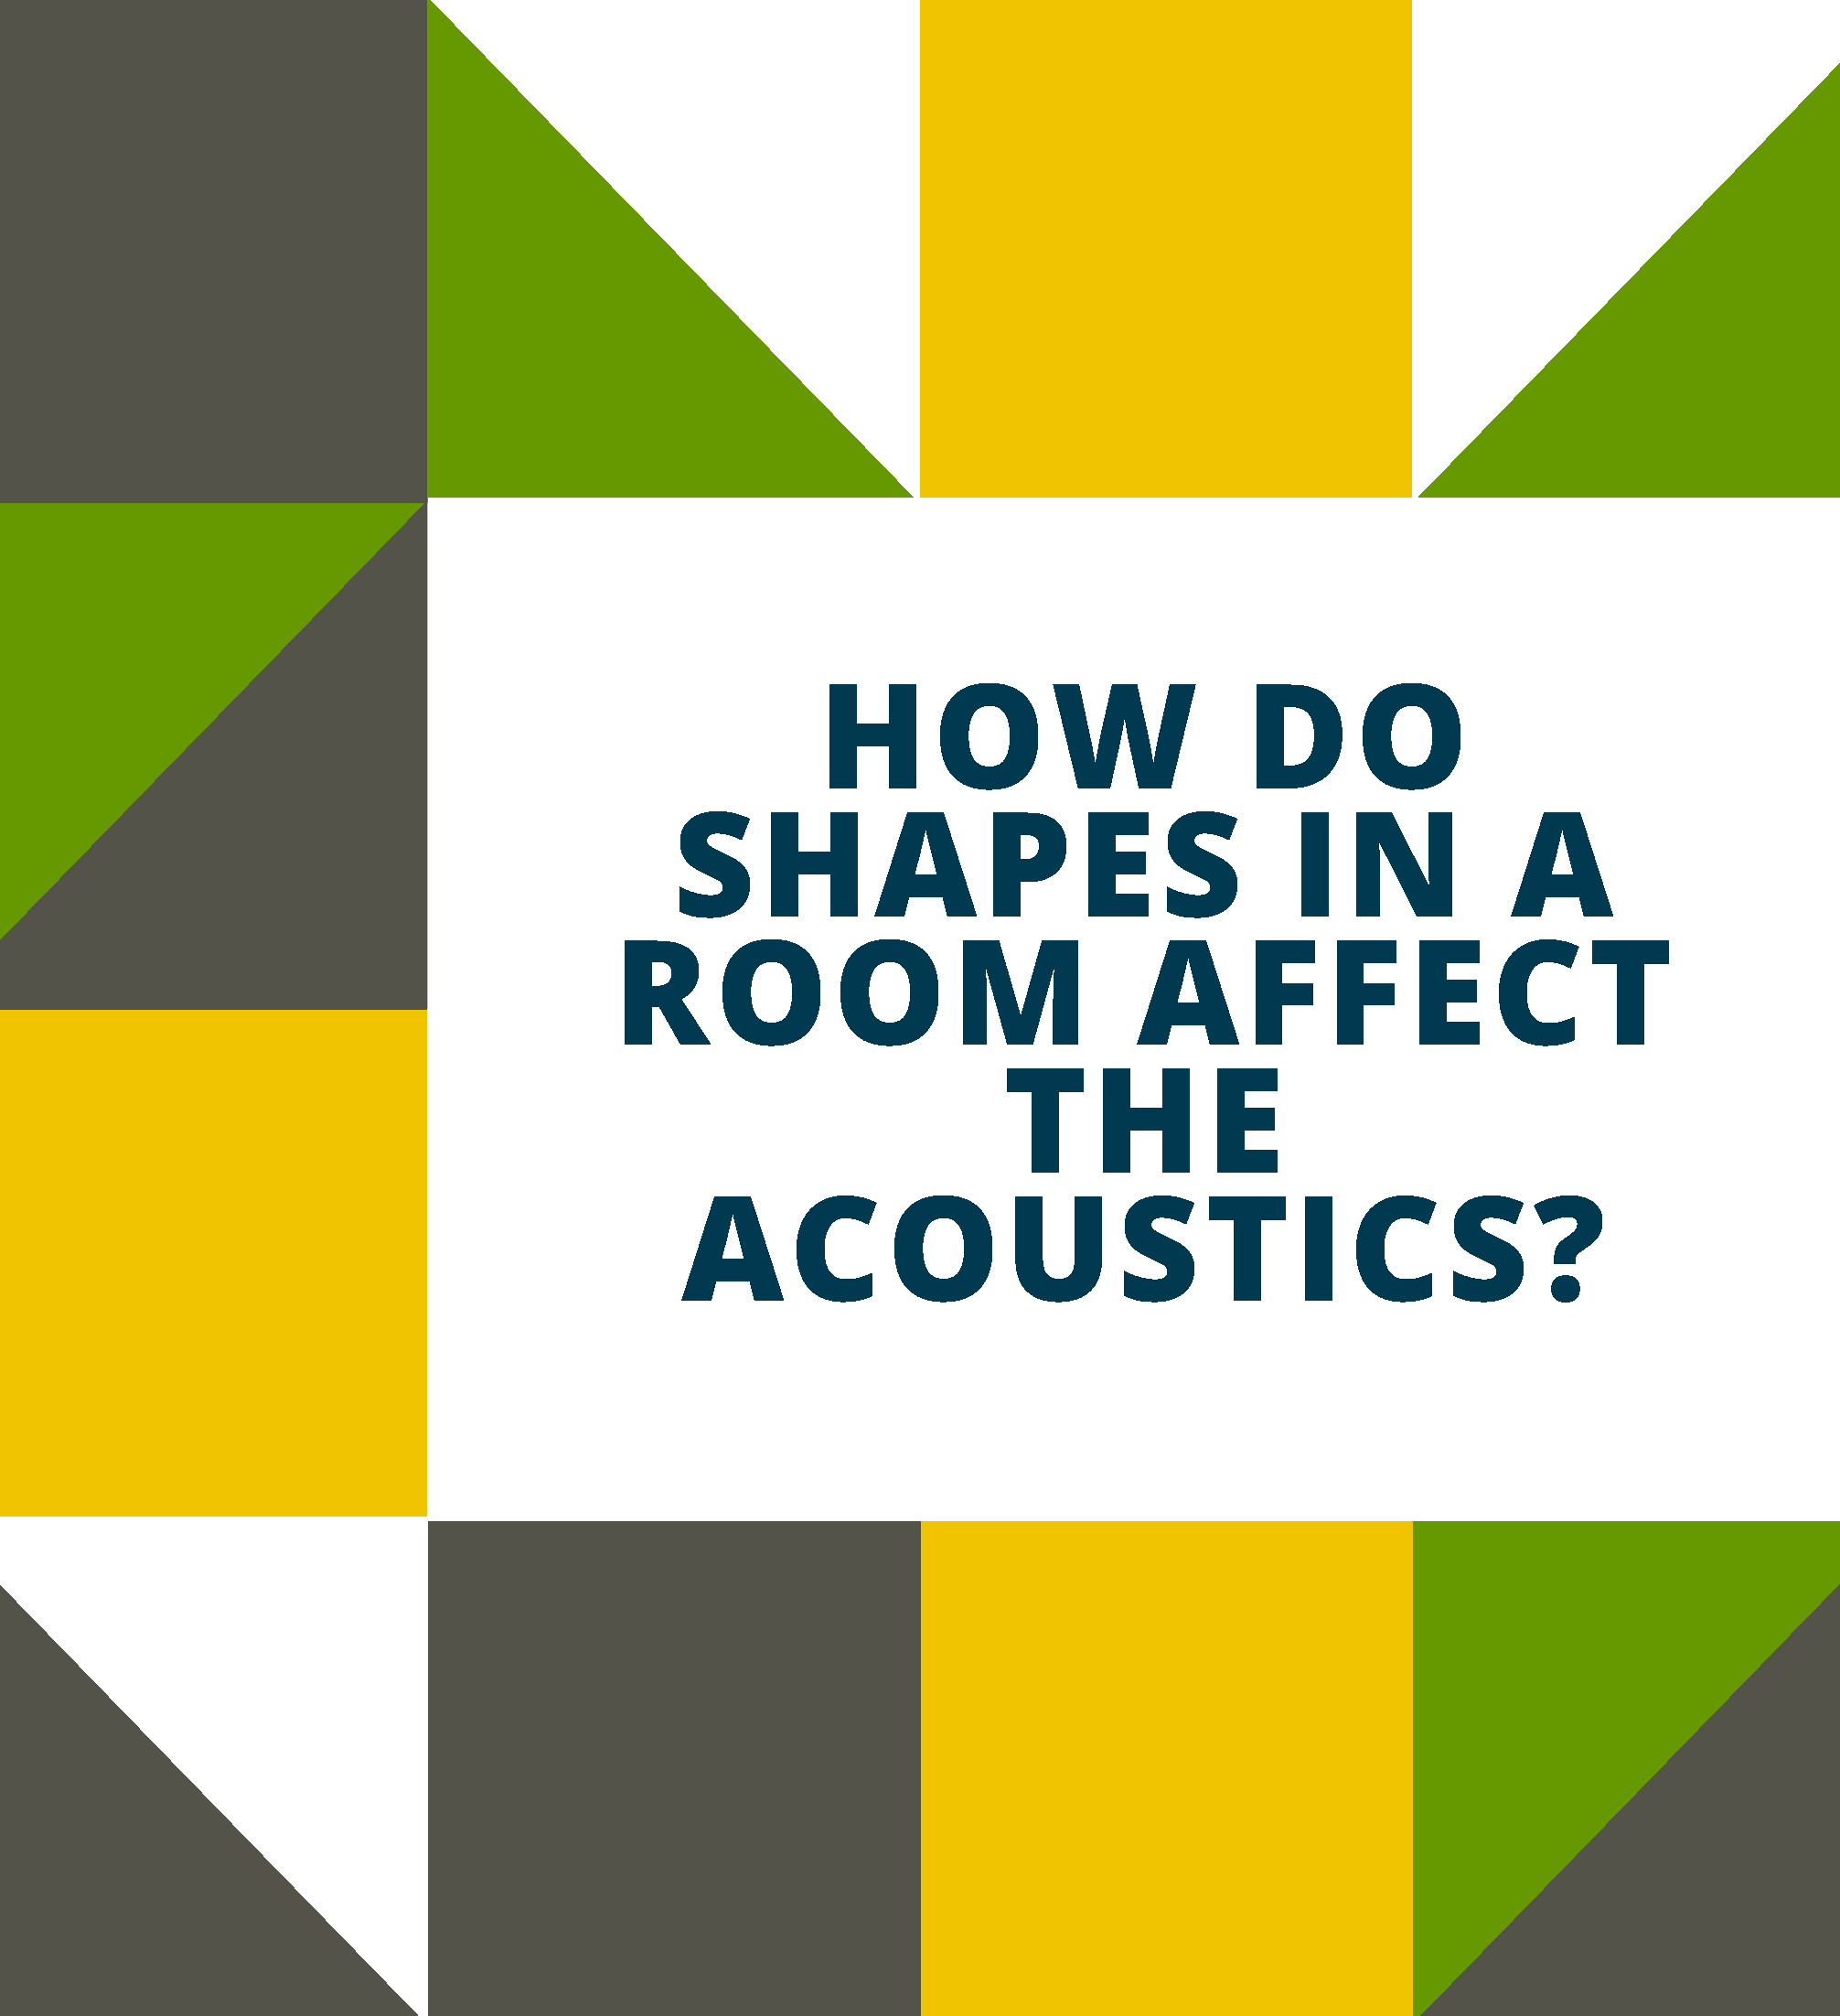 Room Acoustics Tips Using Geometry to Affect Sound